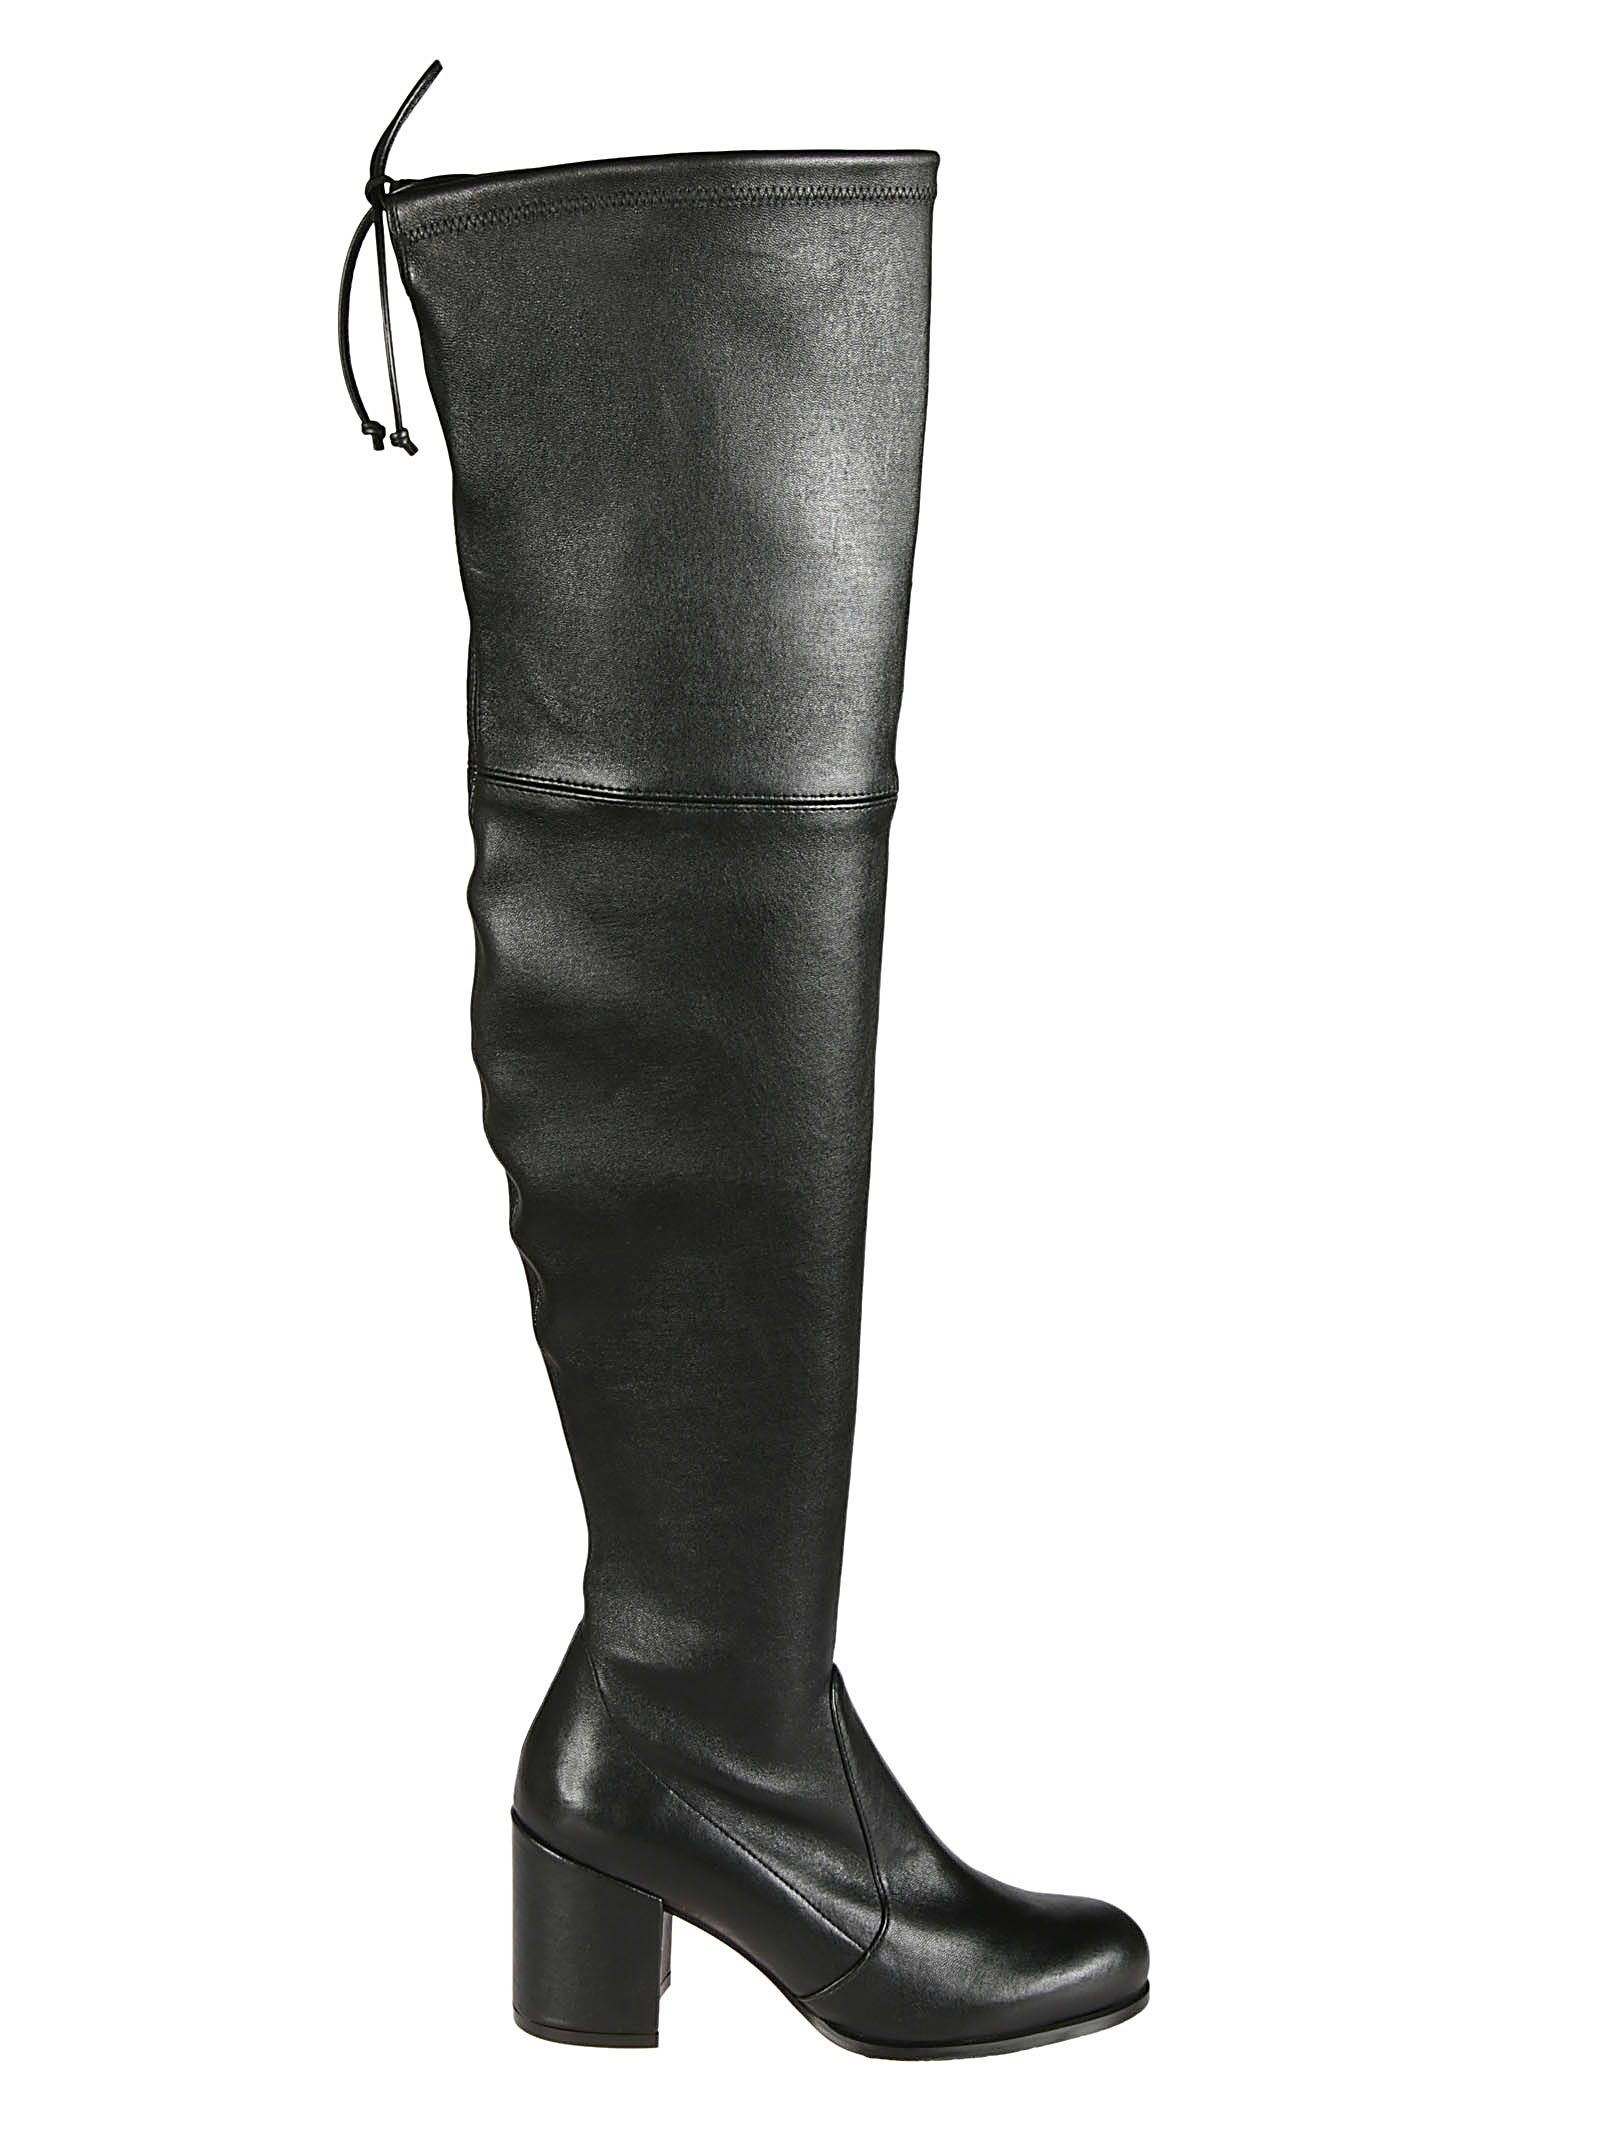 Tieland Over-The-Knee Boots, Black